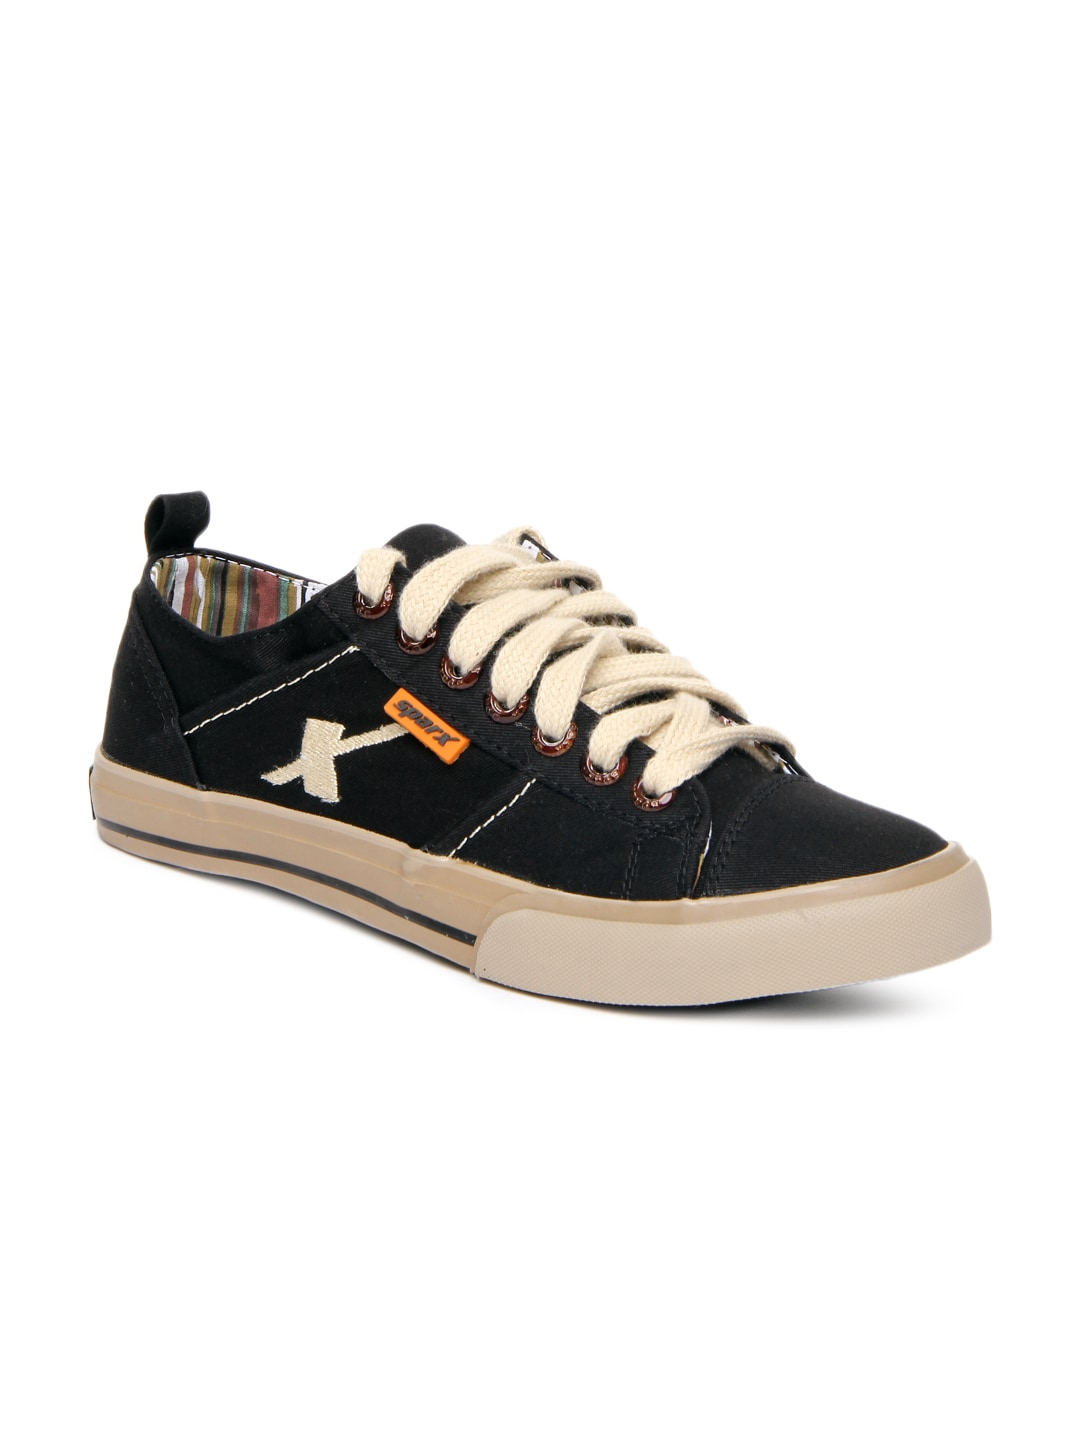 buy sparx black casual shoes 632 footwear for